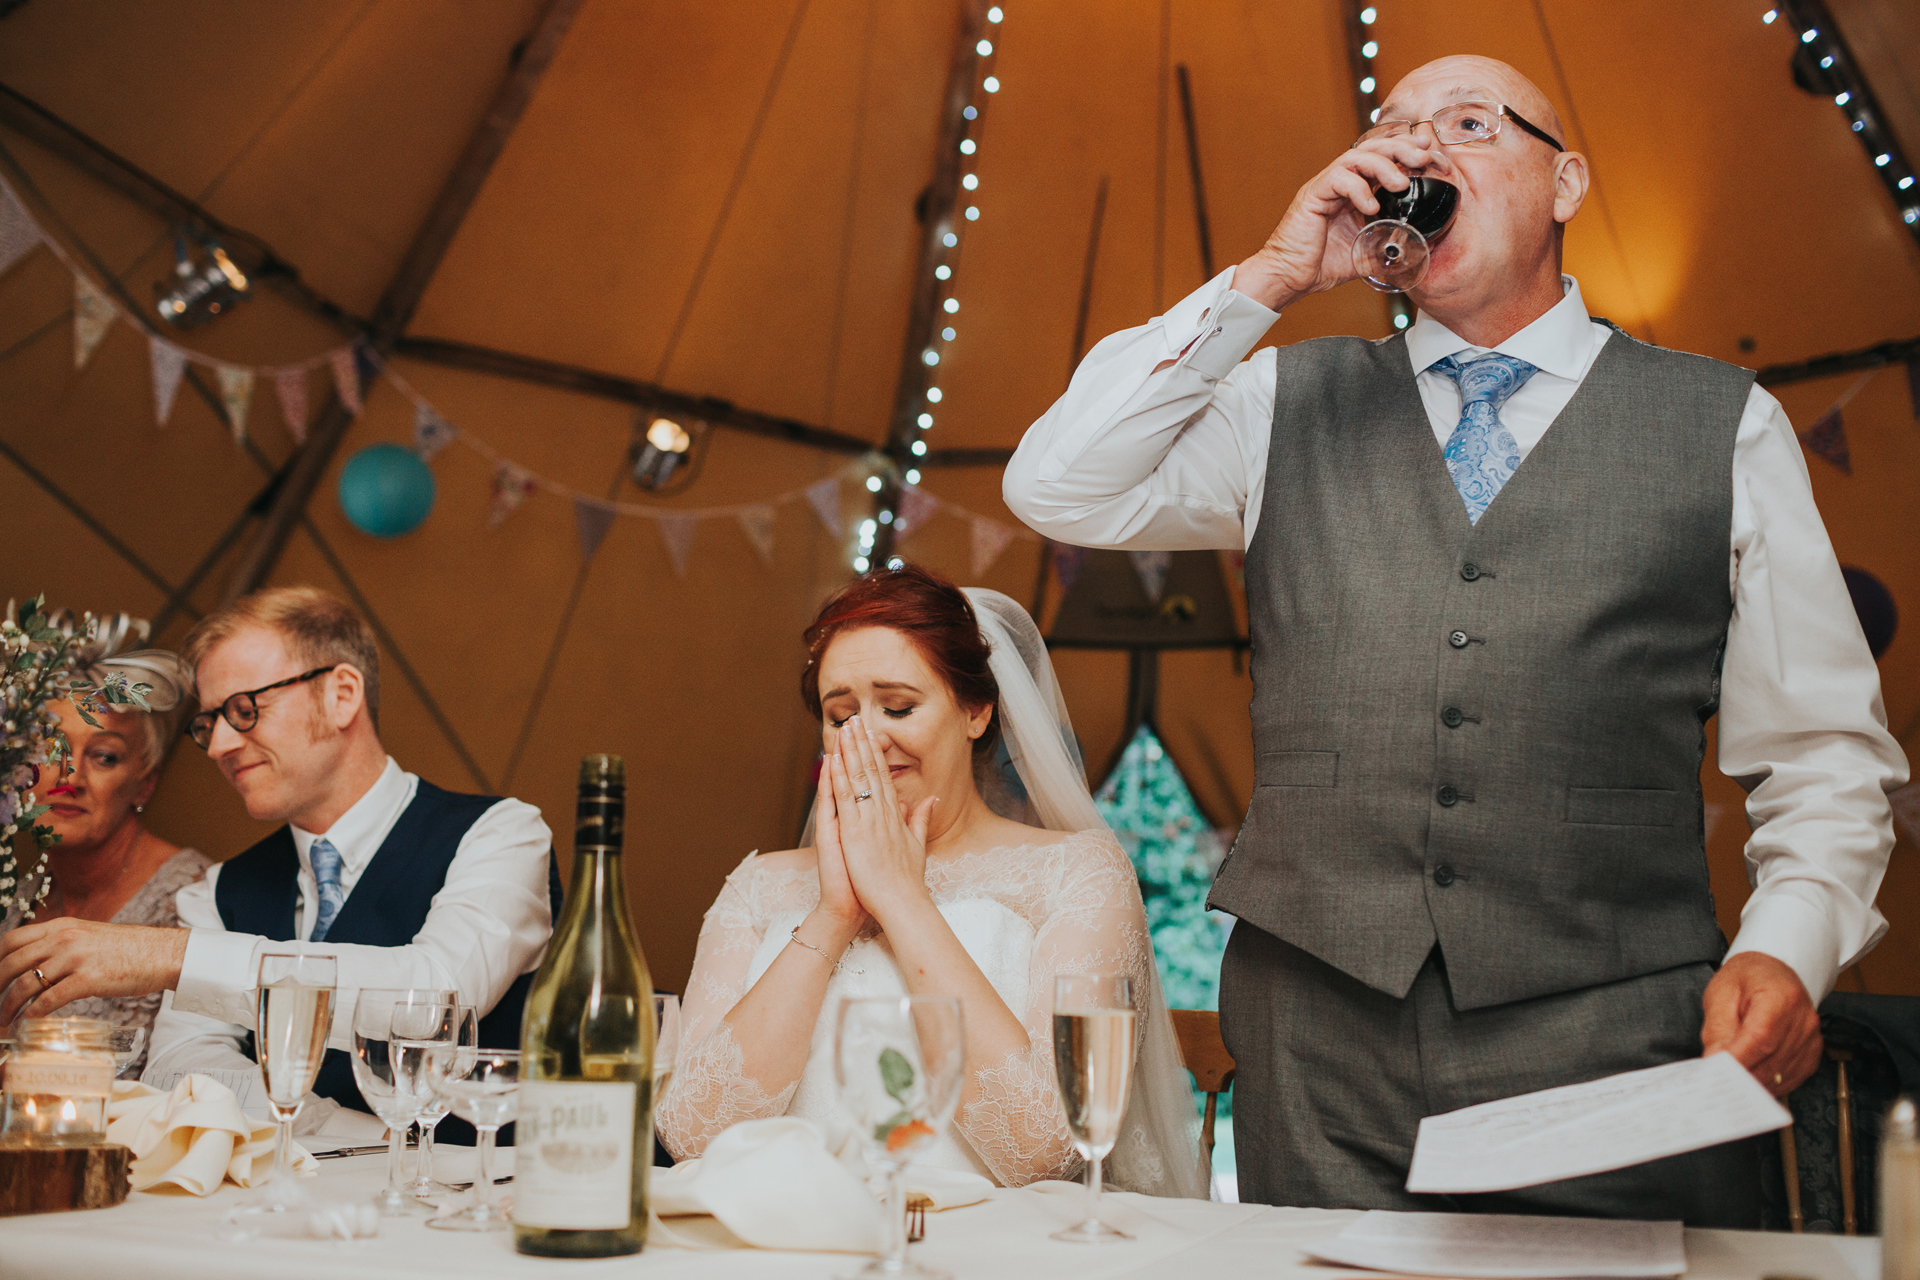 Father of the bride takes a drink, while the bride looks emotional.